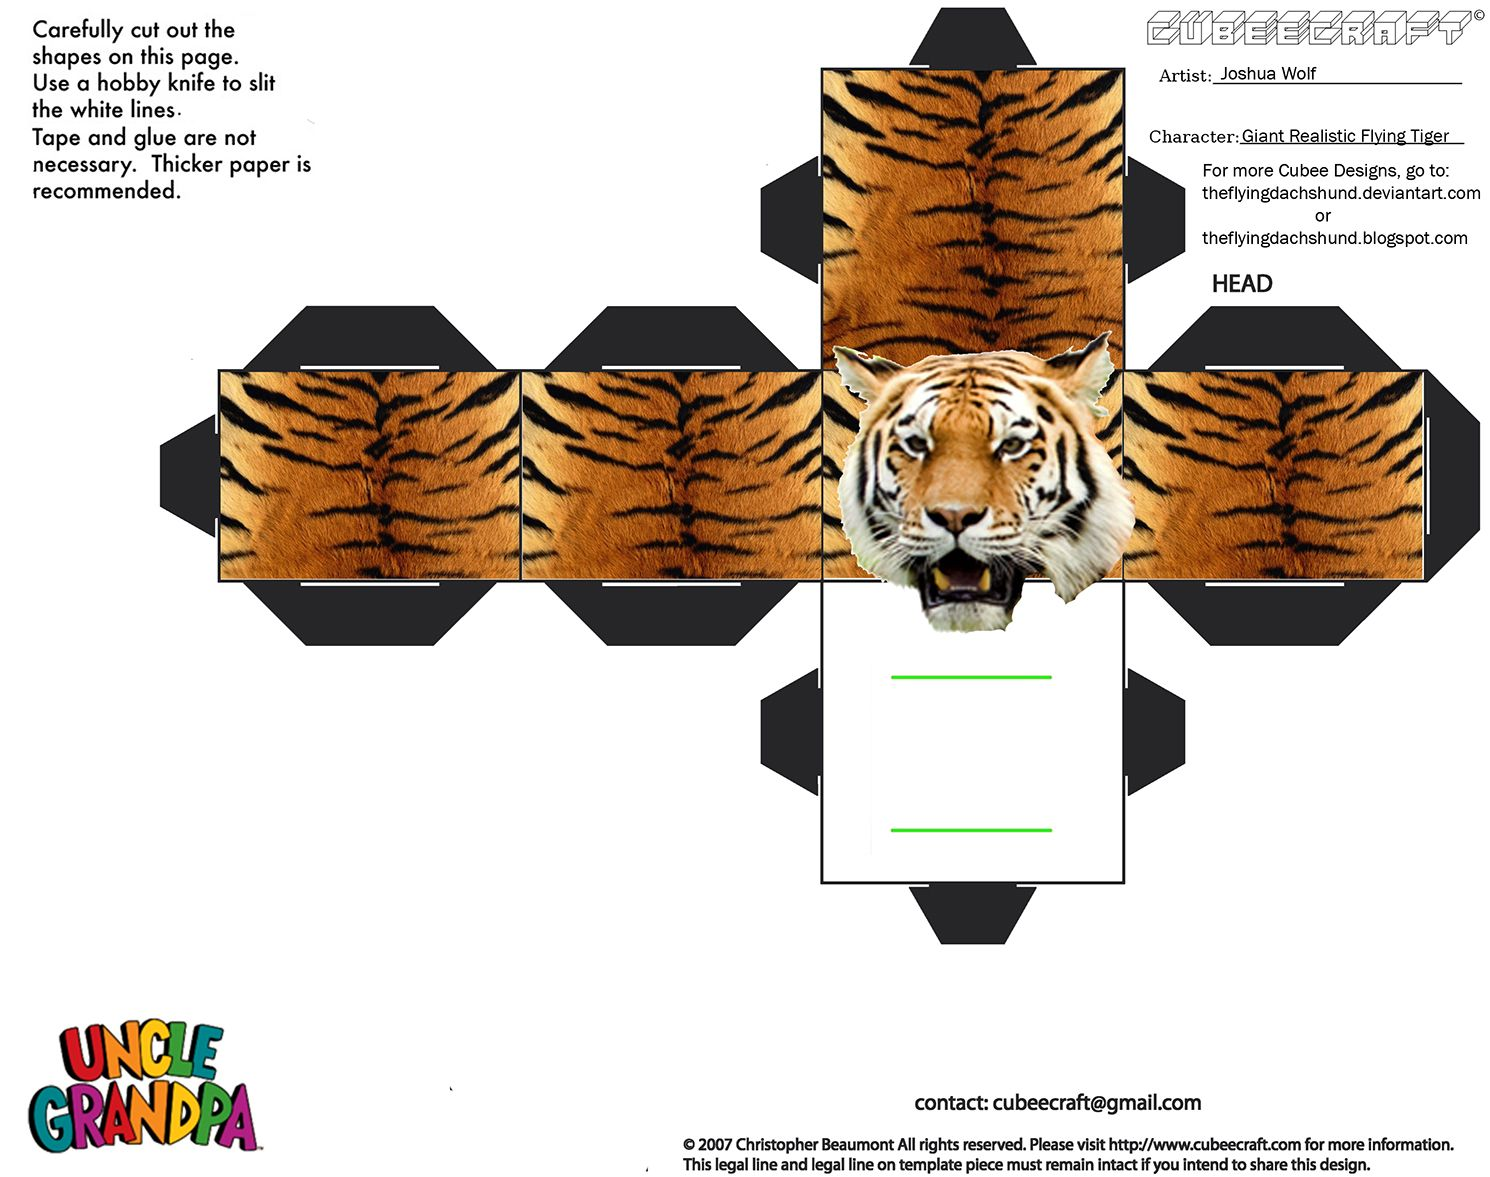 how to draw giant realistic flying tiger